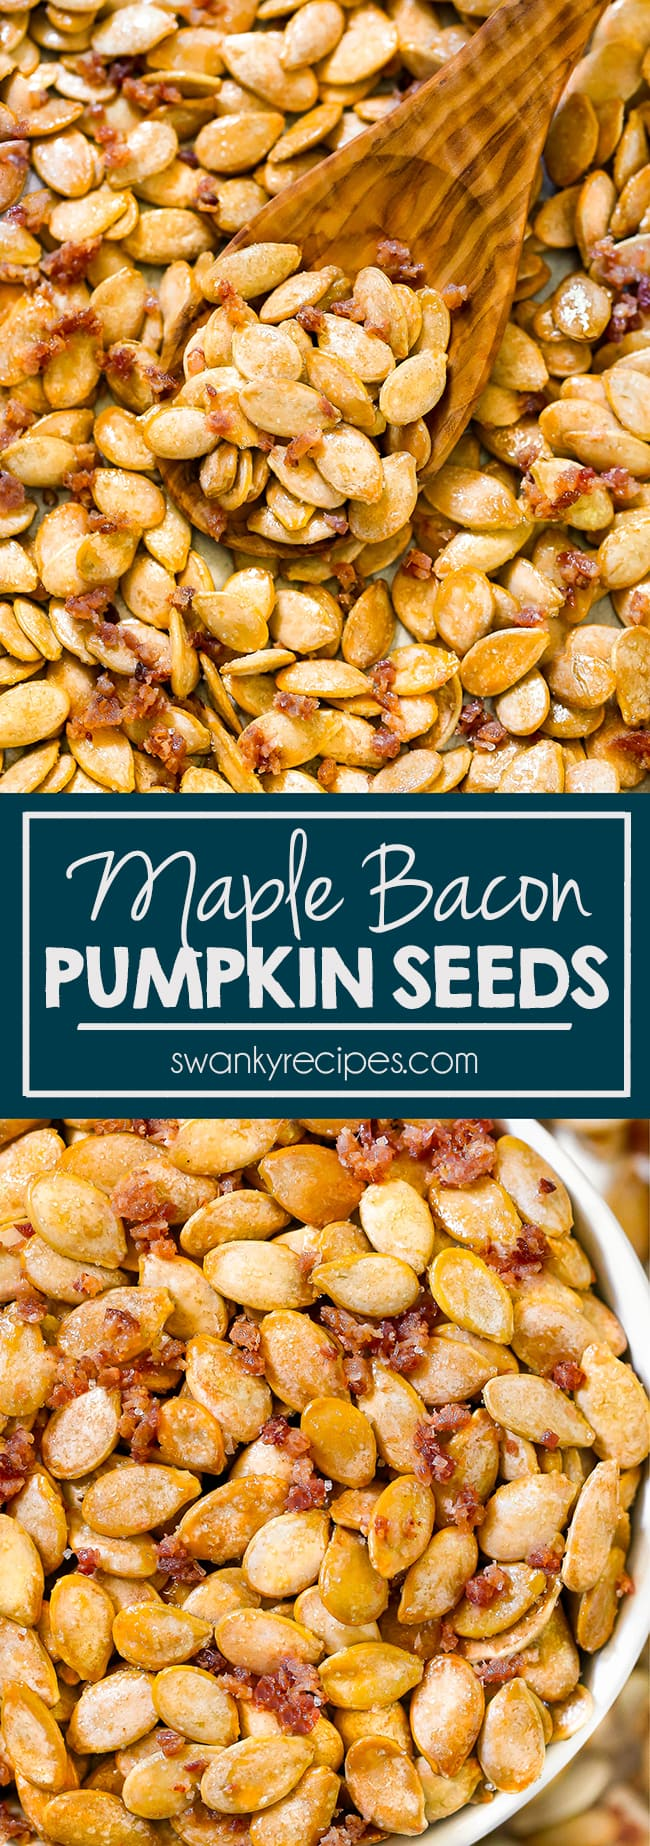 Maple Bacon Pumpkin Seeds recipe. A fun sweet and salty snack for Halloween with real maple syrup and bacon.